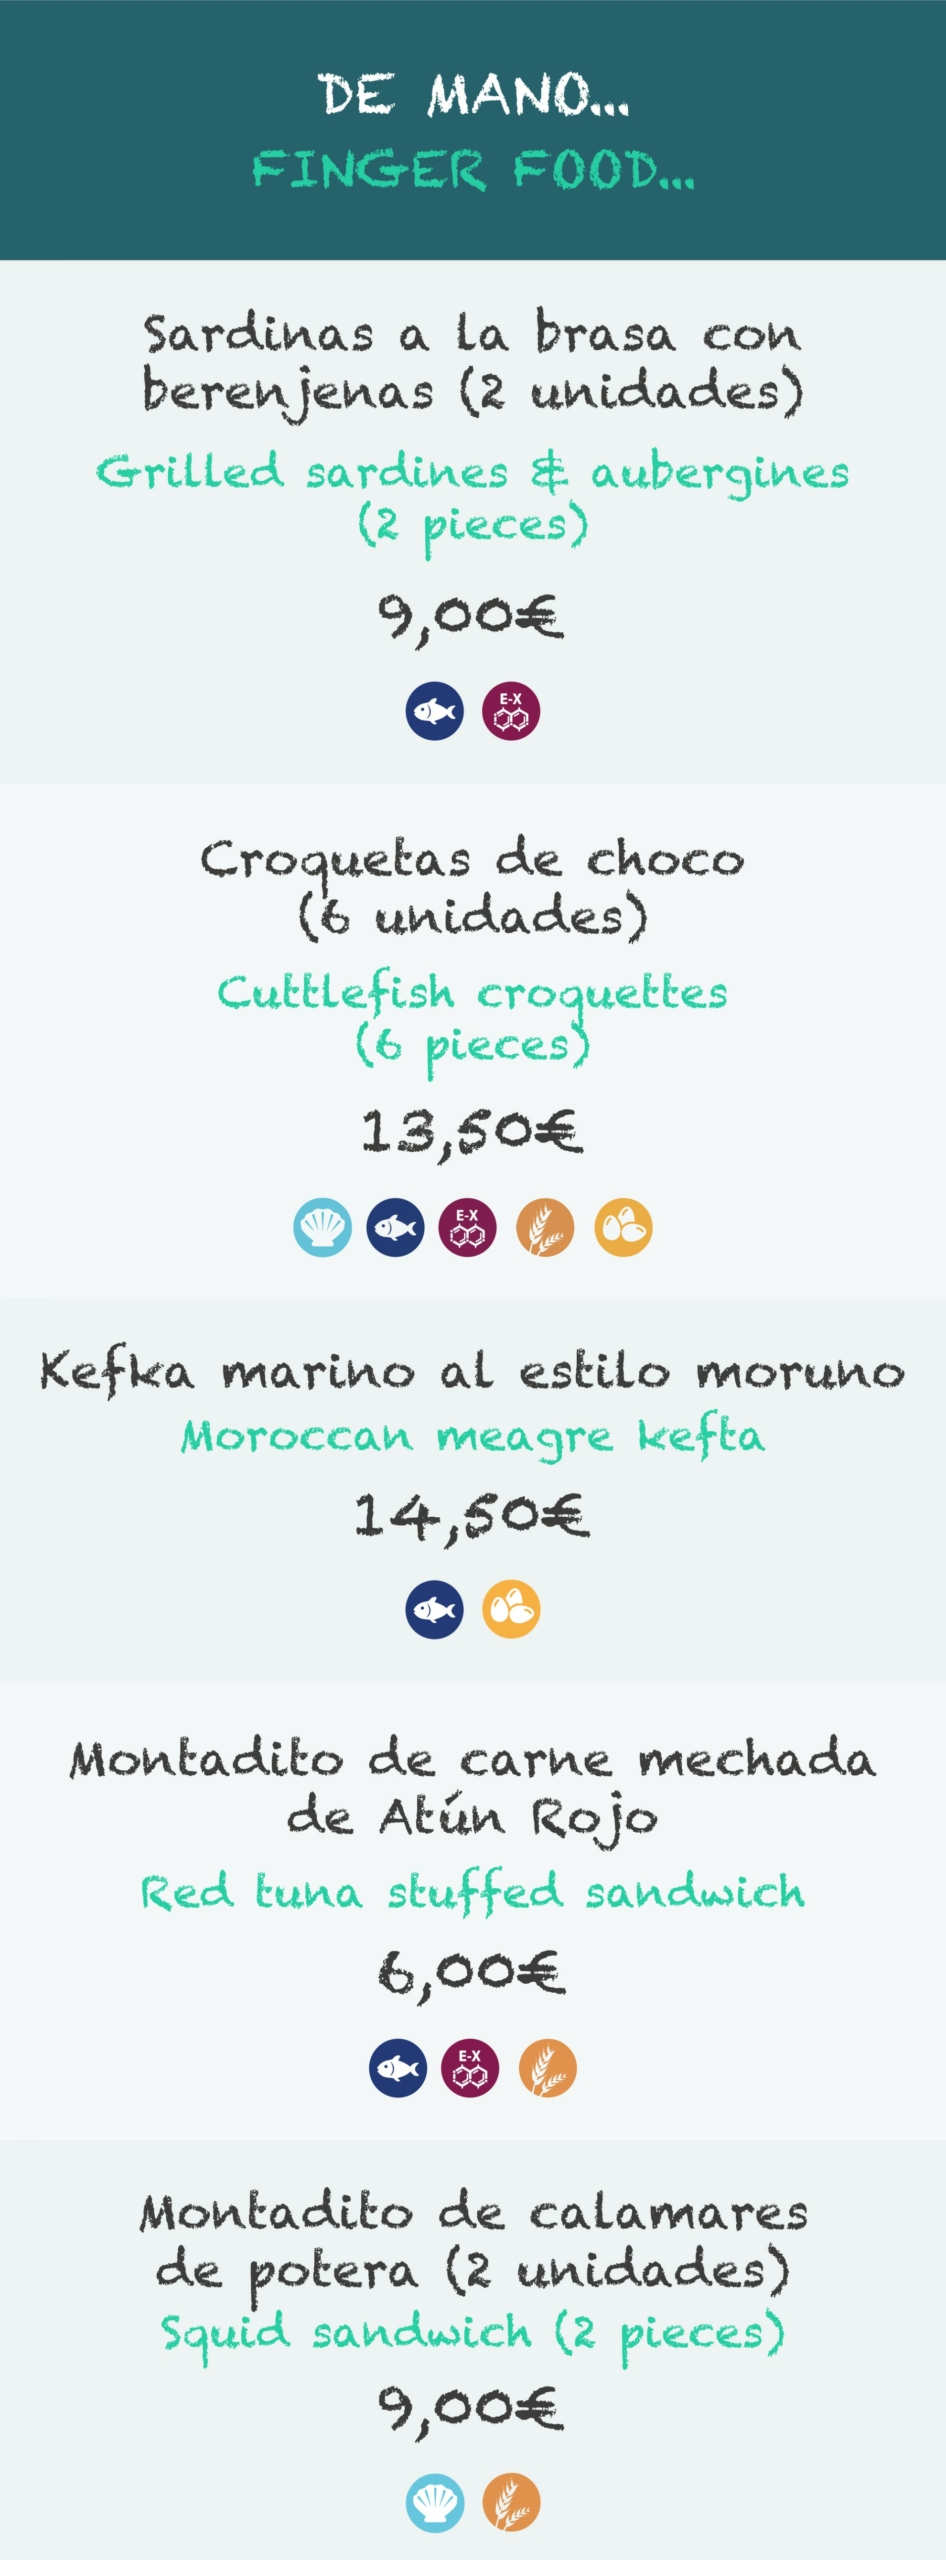 La Taberna Del Chef Del Mar | Carta